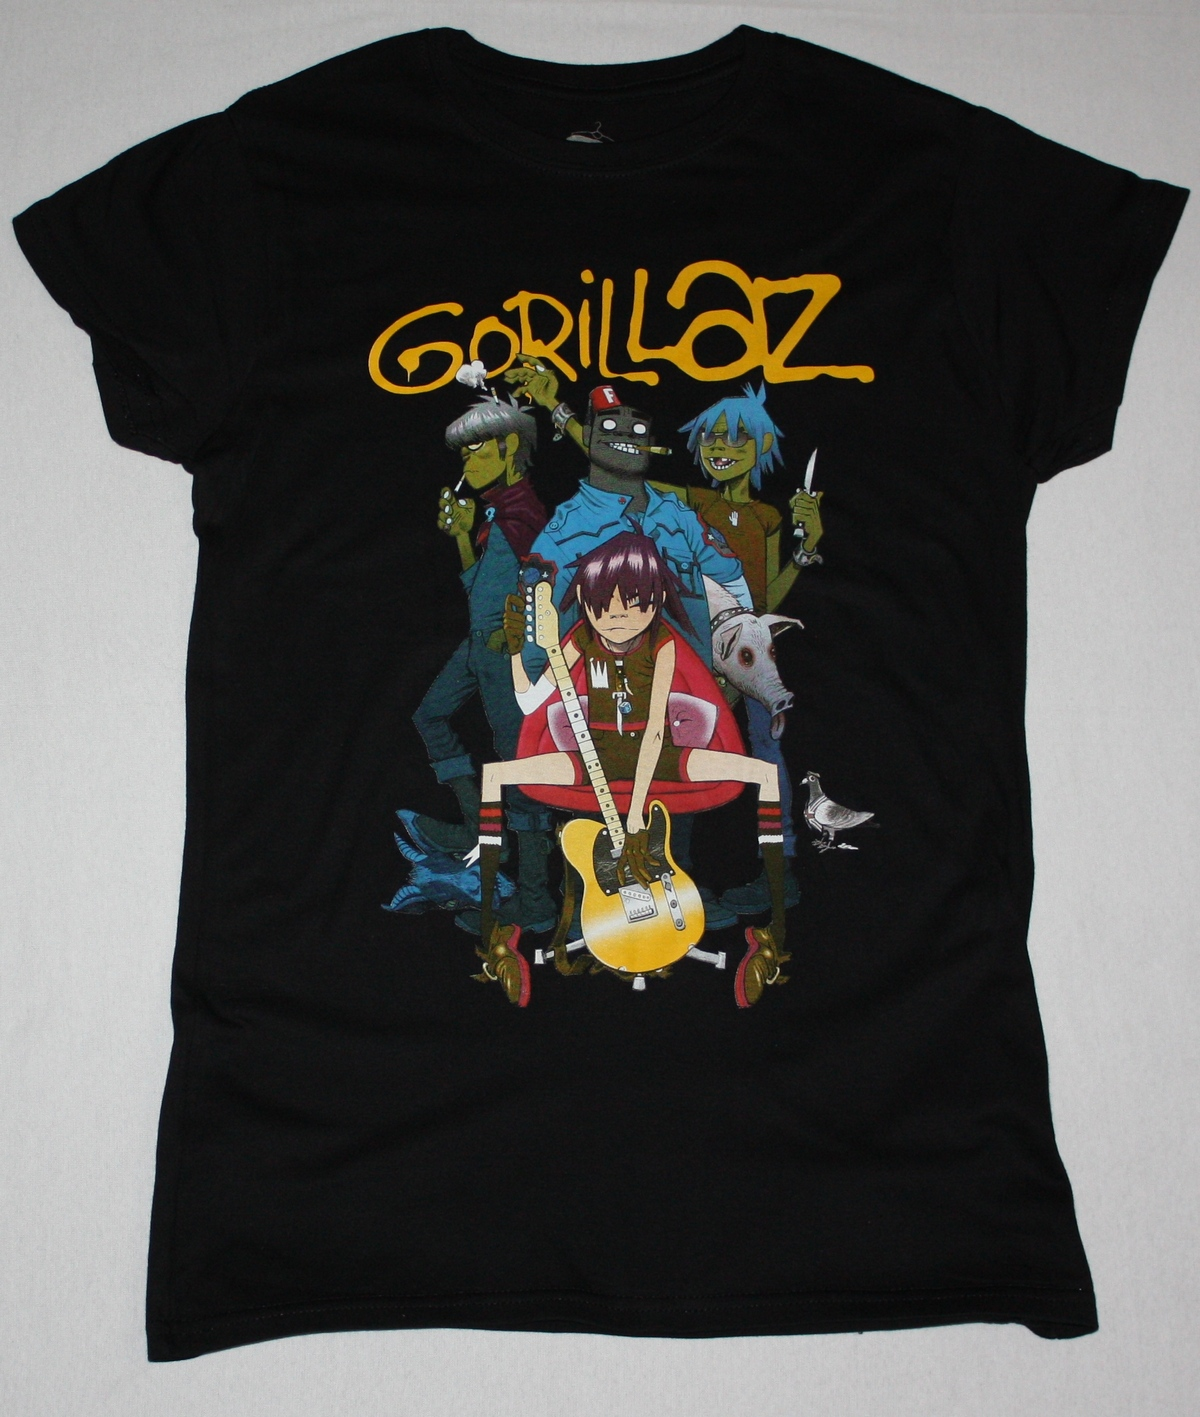 Gorillaz Band Alternative Hip Hop Rock Brit Band Blur New